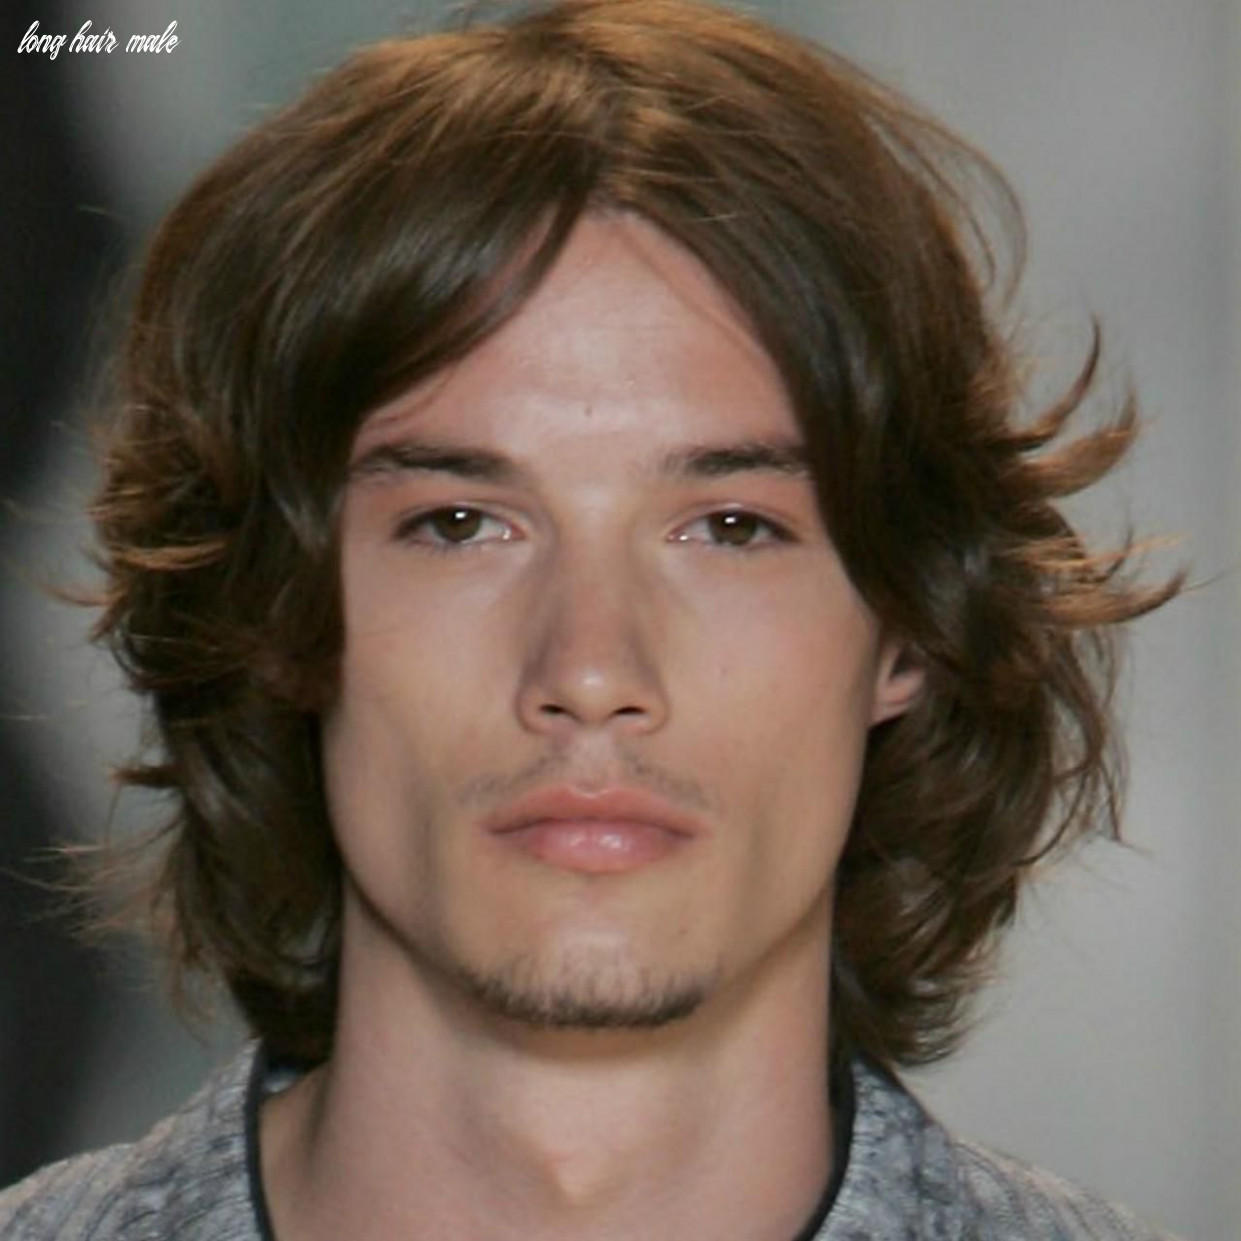 Long hairstyles for men picture gallery long hair male